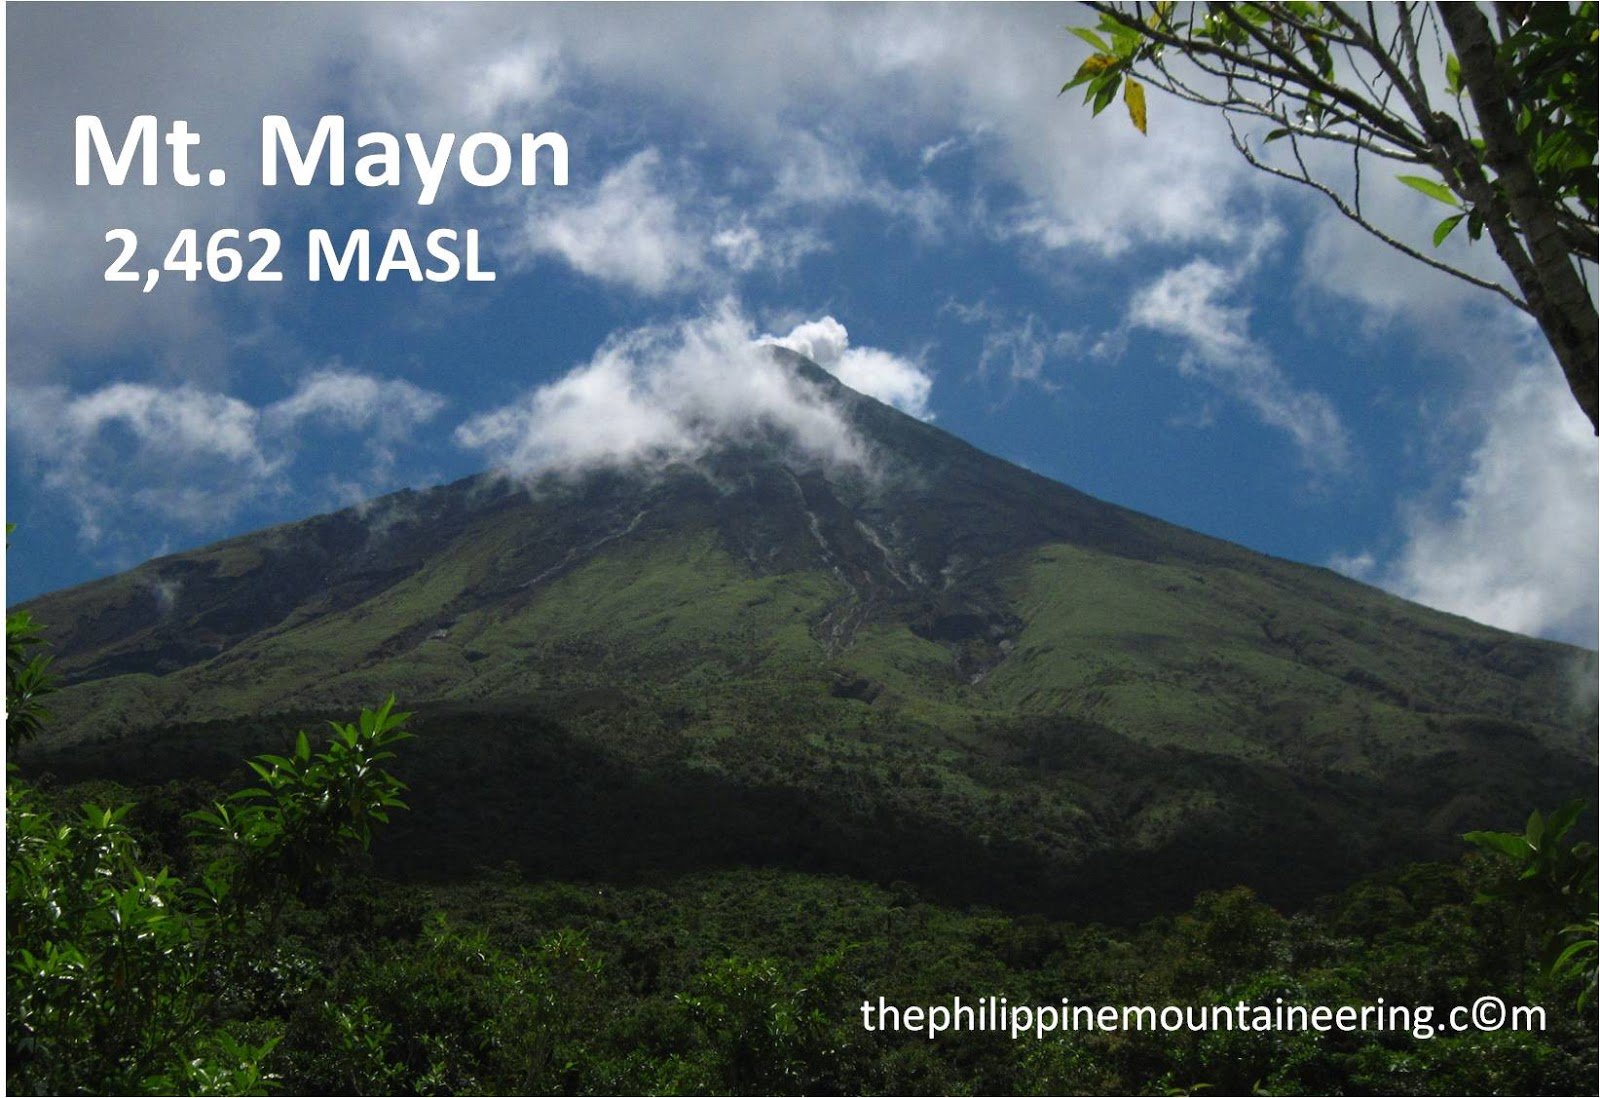 essays about legends legend of mt mayon The story of the legend of mayon volcano is a the legend of mount mayon has become a part of the life of these legends were believed to be the reason of the.